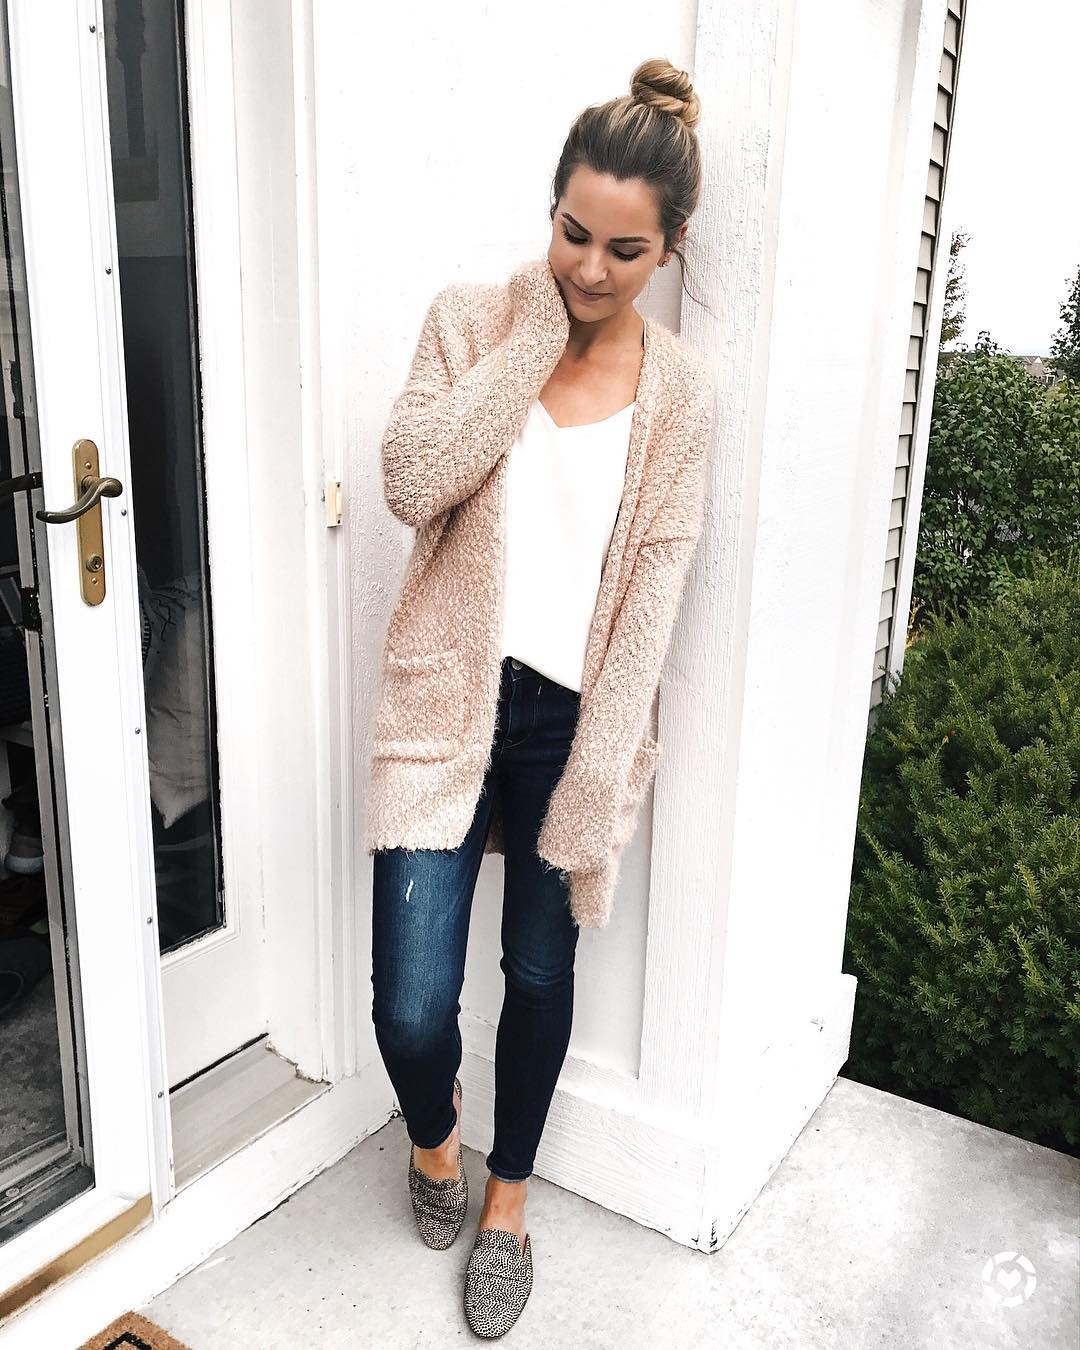 Cozy Nude Cardigan With White Top And Jeans